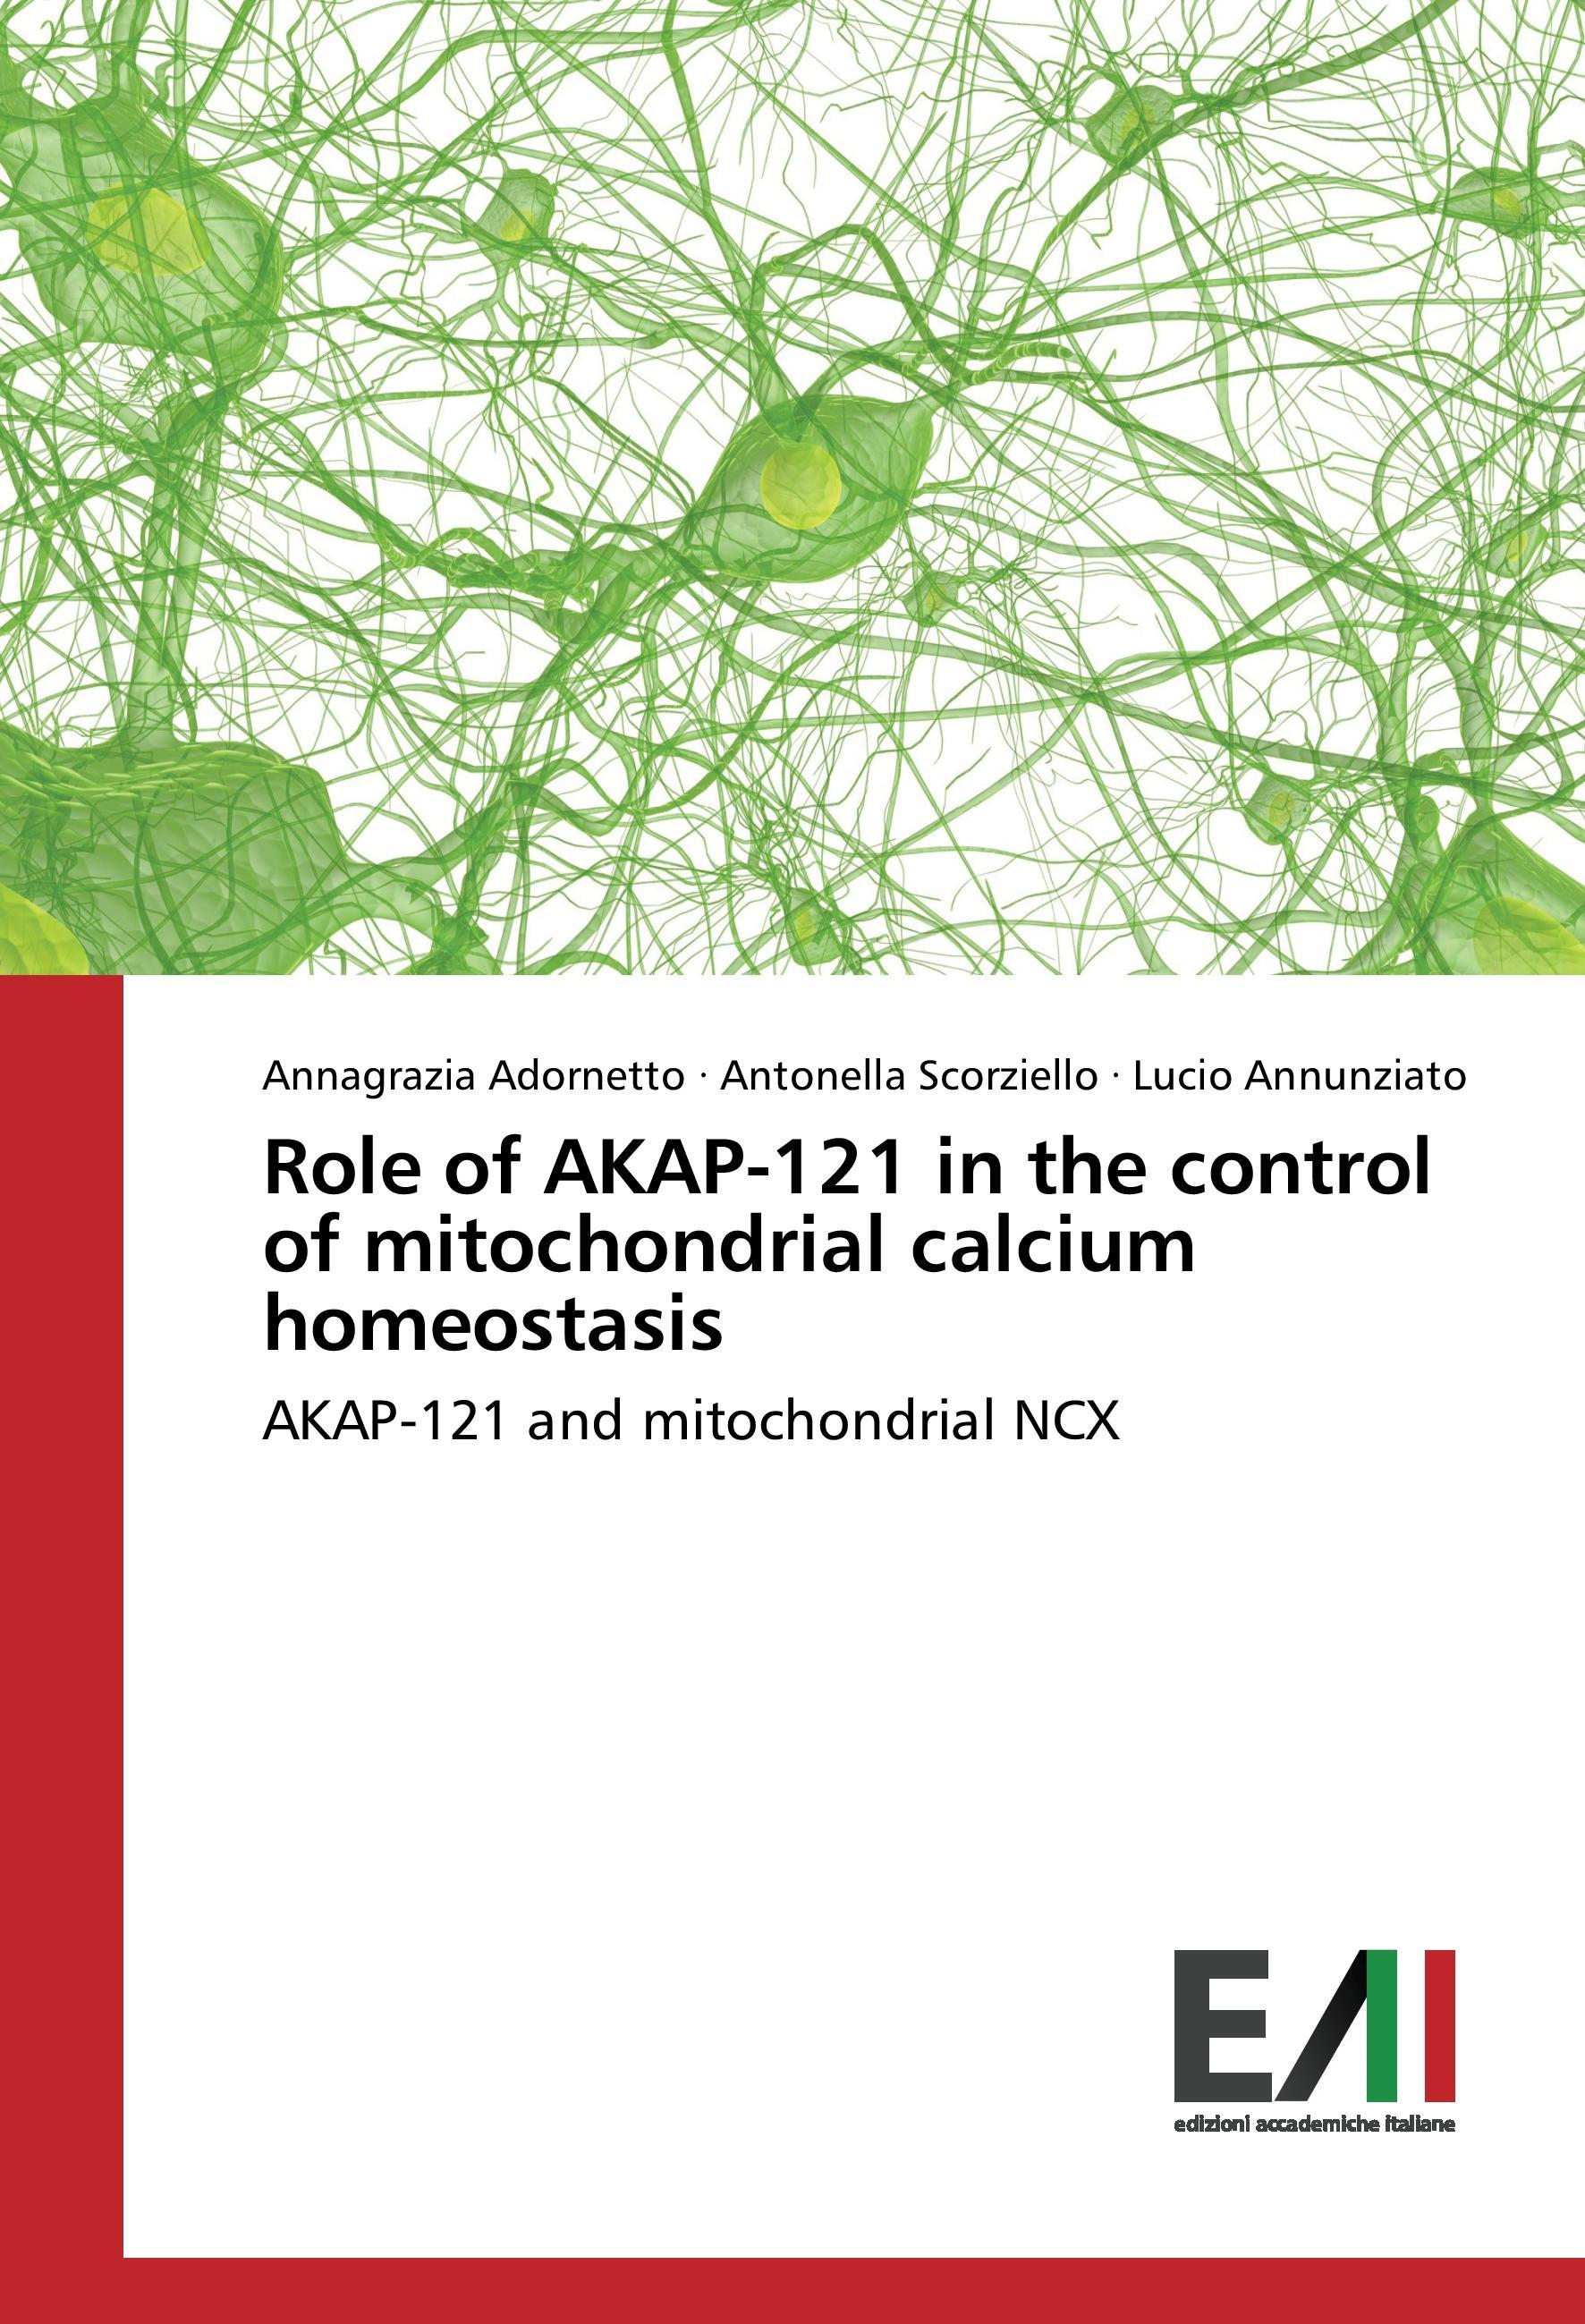 Role of AKAP-121 in the control of mitochondrial calcium hom ... 9783330778511